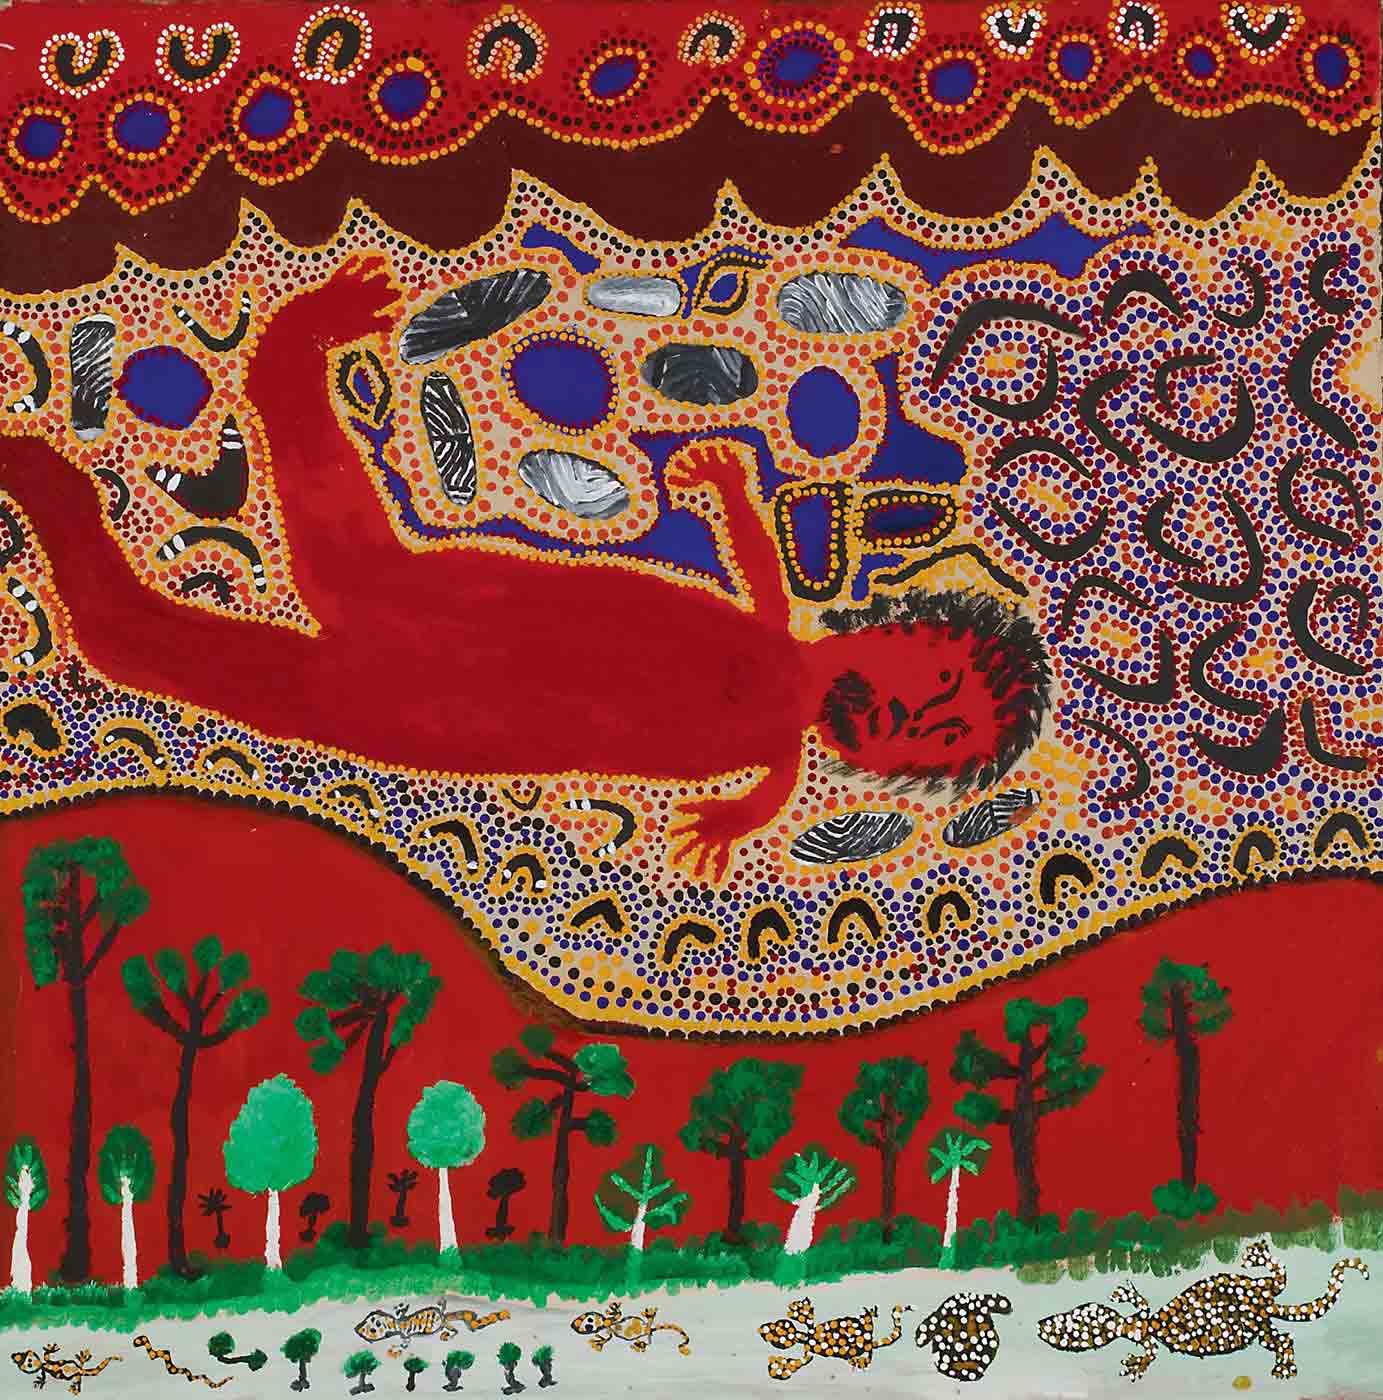 A painting on canvas with a supine human figure in red, outlined in yellow dots, with facial features in black, in the centre. The figure is surrounded by boomerang, rock and circle motifs in grey or blue on a background of blue, orange, yellow, and grey dots. There is a brown scalloped horizontal line below the figure, then underneath that a red background with dot edged blue circle and grey boomerang motifs. Above the figure is a red background with a wavy edge and trees and undergrowth in green, black and white. Above the red section is a line of reptiles including geckos covered in white and yellow spots with a few small trees. The text at the top reads 'BA/194/MM' while text at the bottom reads 'Billy Atkins 106 x 106 08-284'. - click to view larger image